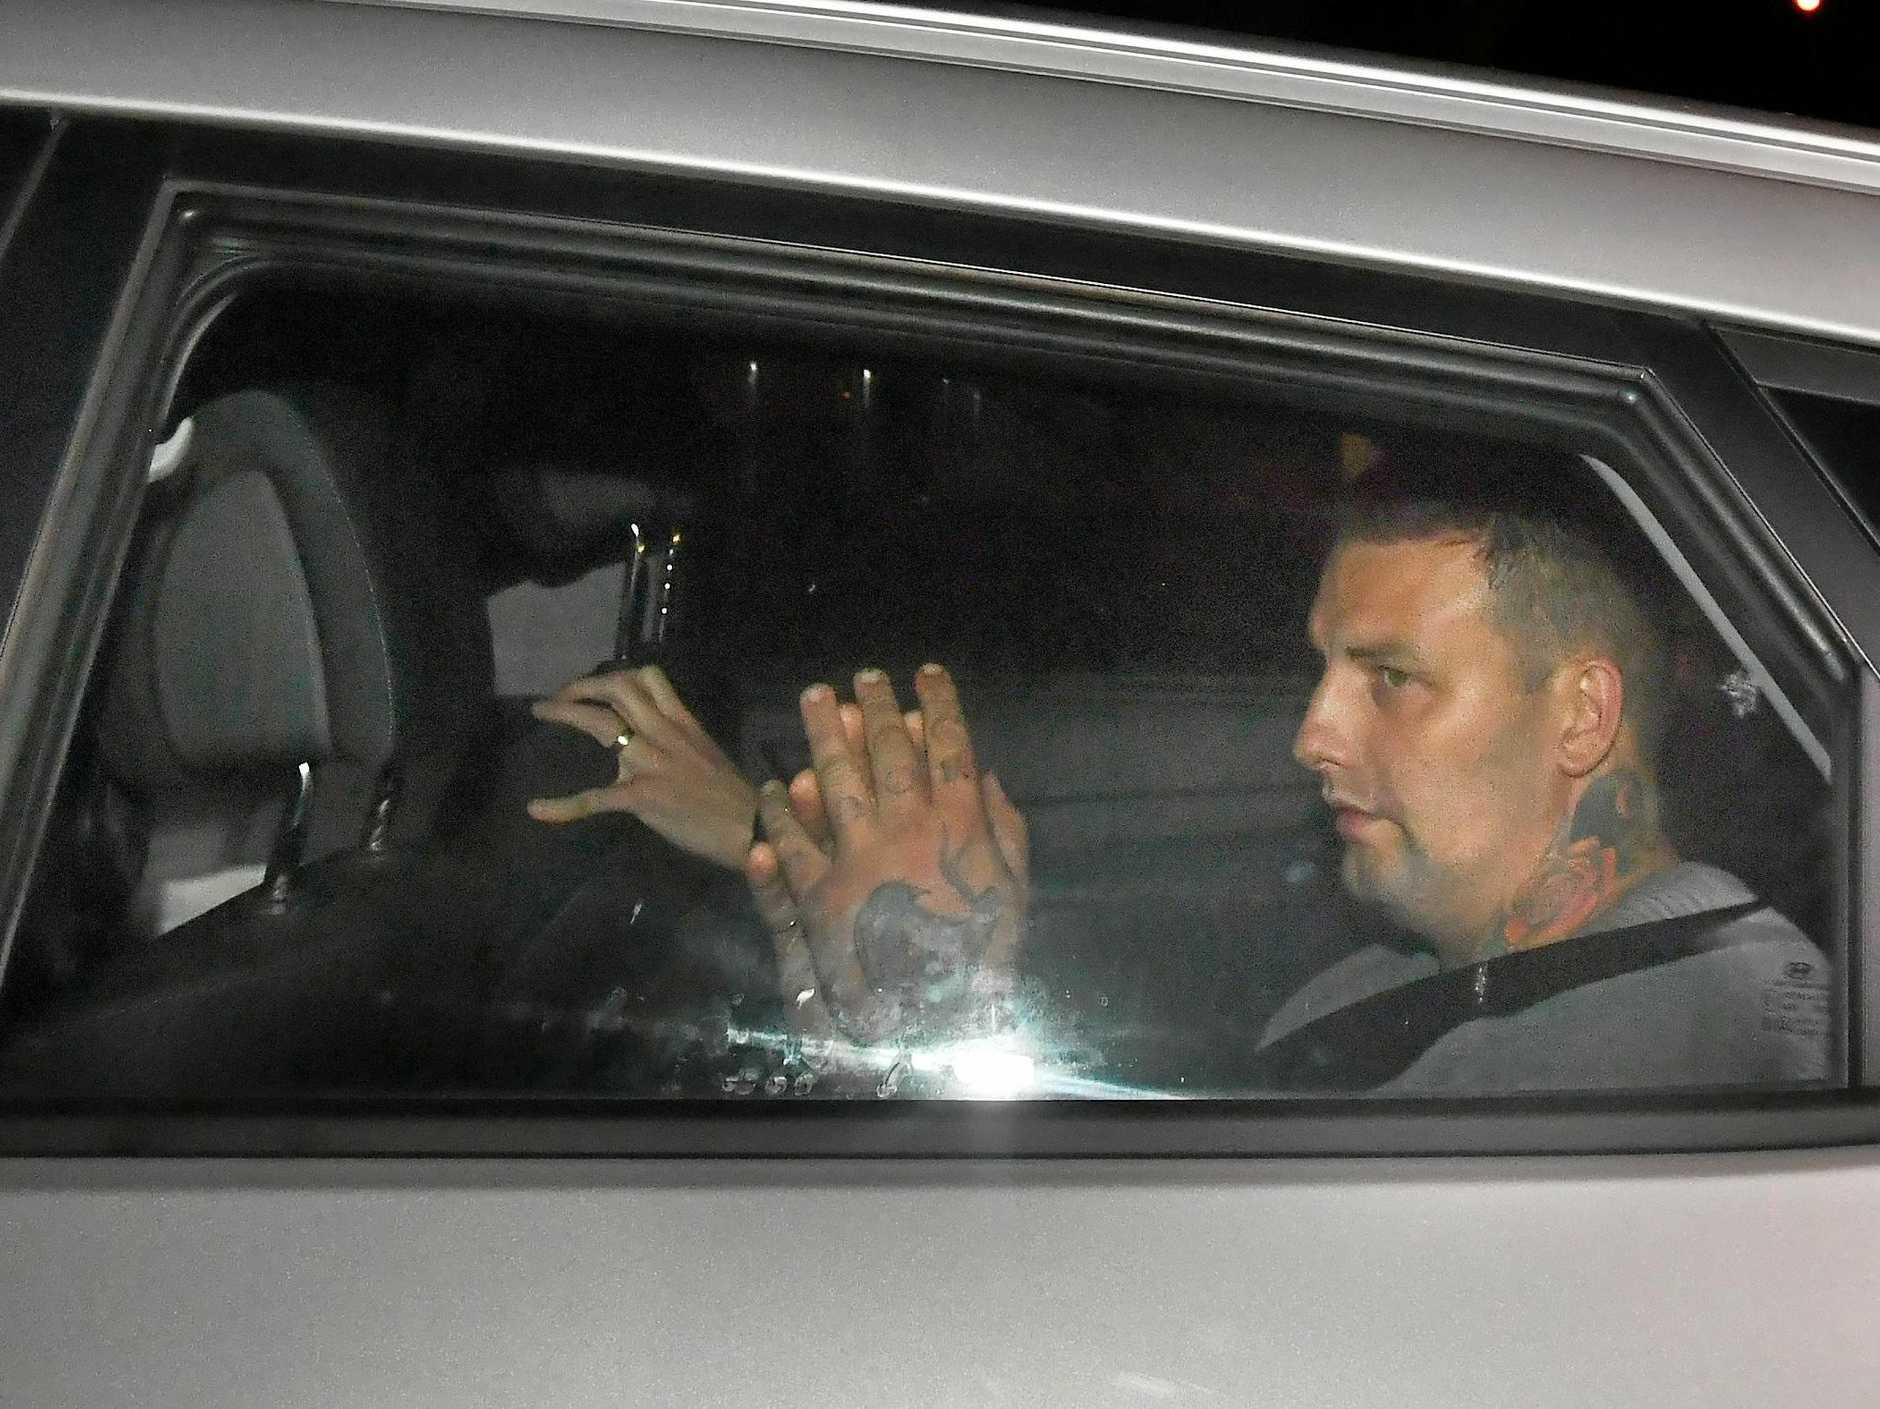 Zlatko Sikorsky is seen in a police vehicle arriving to Maroochydore Police Station, Queensland,  Saturday, June 30, 2018.  Sikorsky, 34, was arrested early Saturday night when he surrendered to police after a siege at an Alexandra Headlands unit complex on Queensland?s Sunshine Coast that began on Friday afternoon. (AAP Image/Darren England) NO ARCHIVING